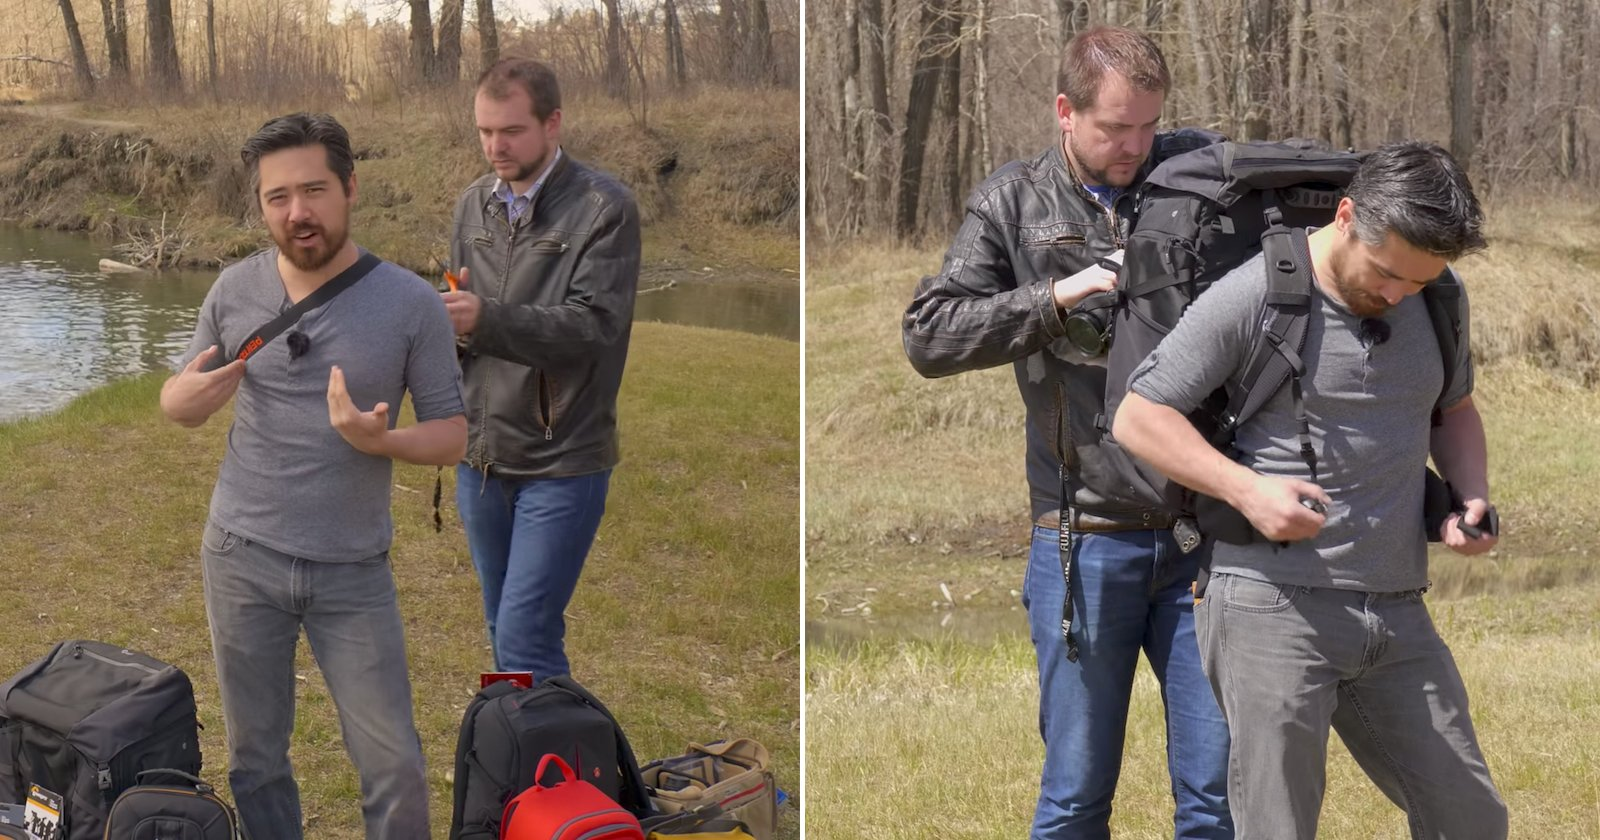 The Best and Worst Ways to Carry Your Camera Gear: Straps, Slings, and More